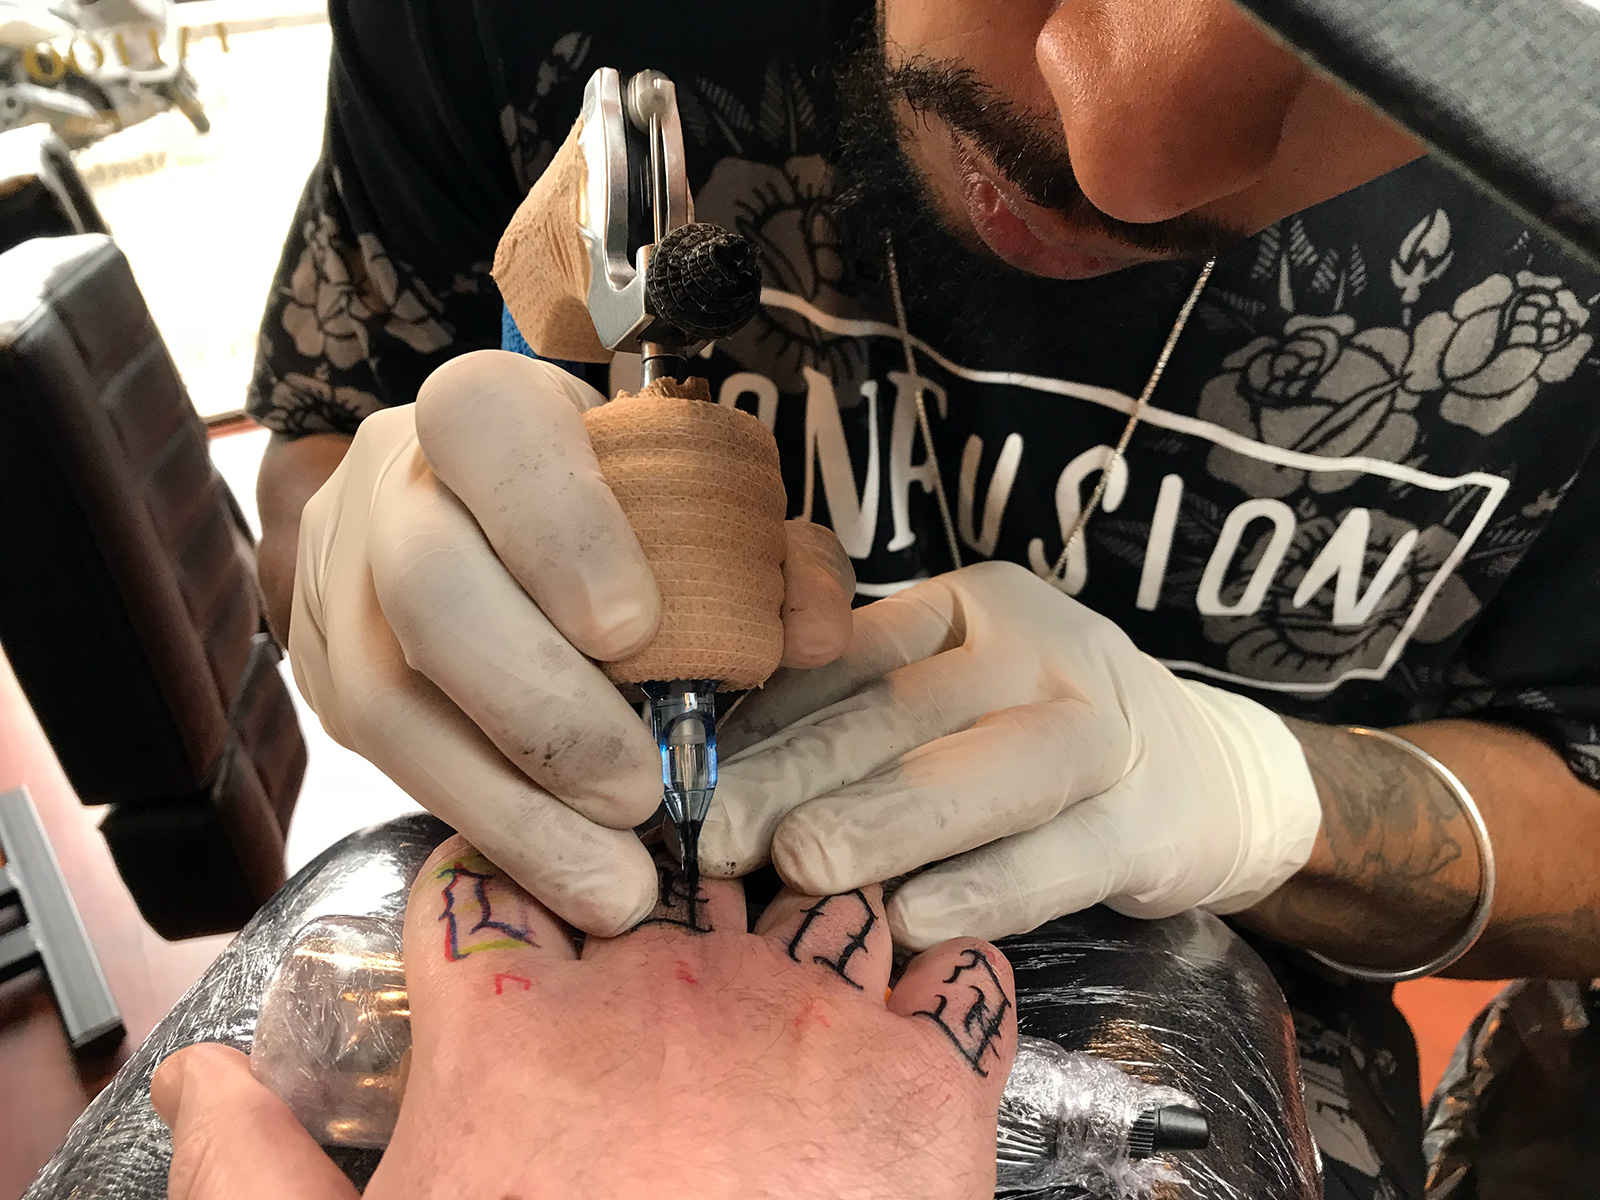 La Rosa Negra Tattoo in Seville, Spain by Jets Like Taxis